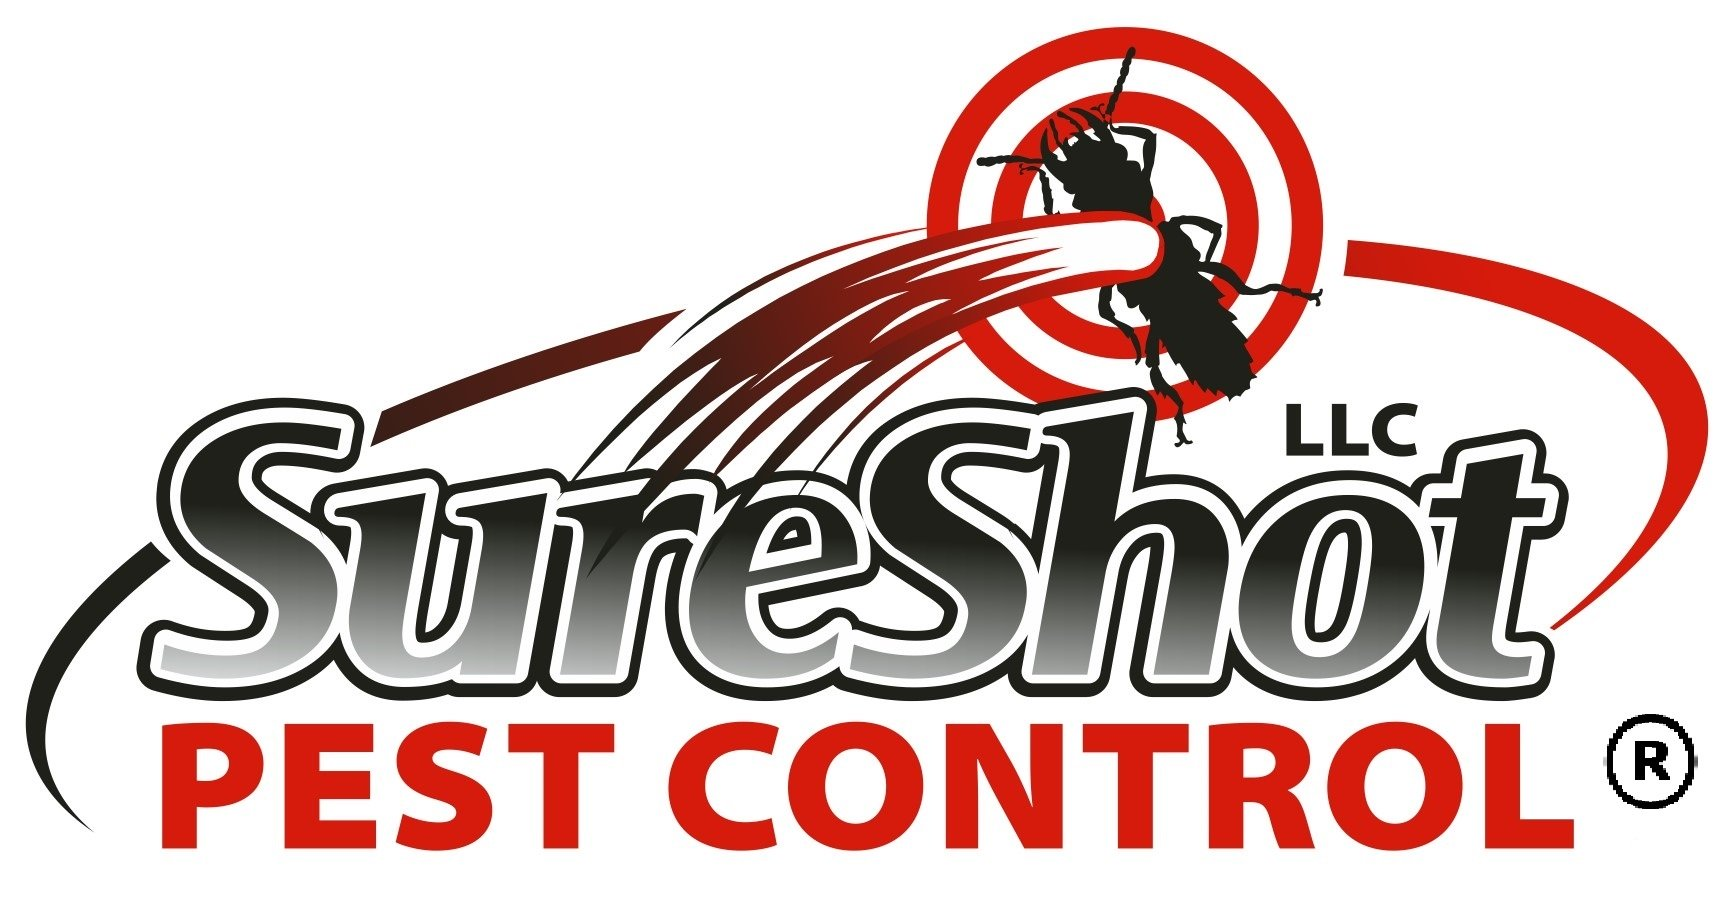 SureShot Pest Control, LLC of Michigan is a quality pest control company serving Michigan and South Central Indiana..